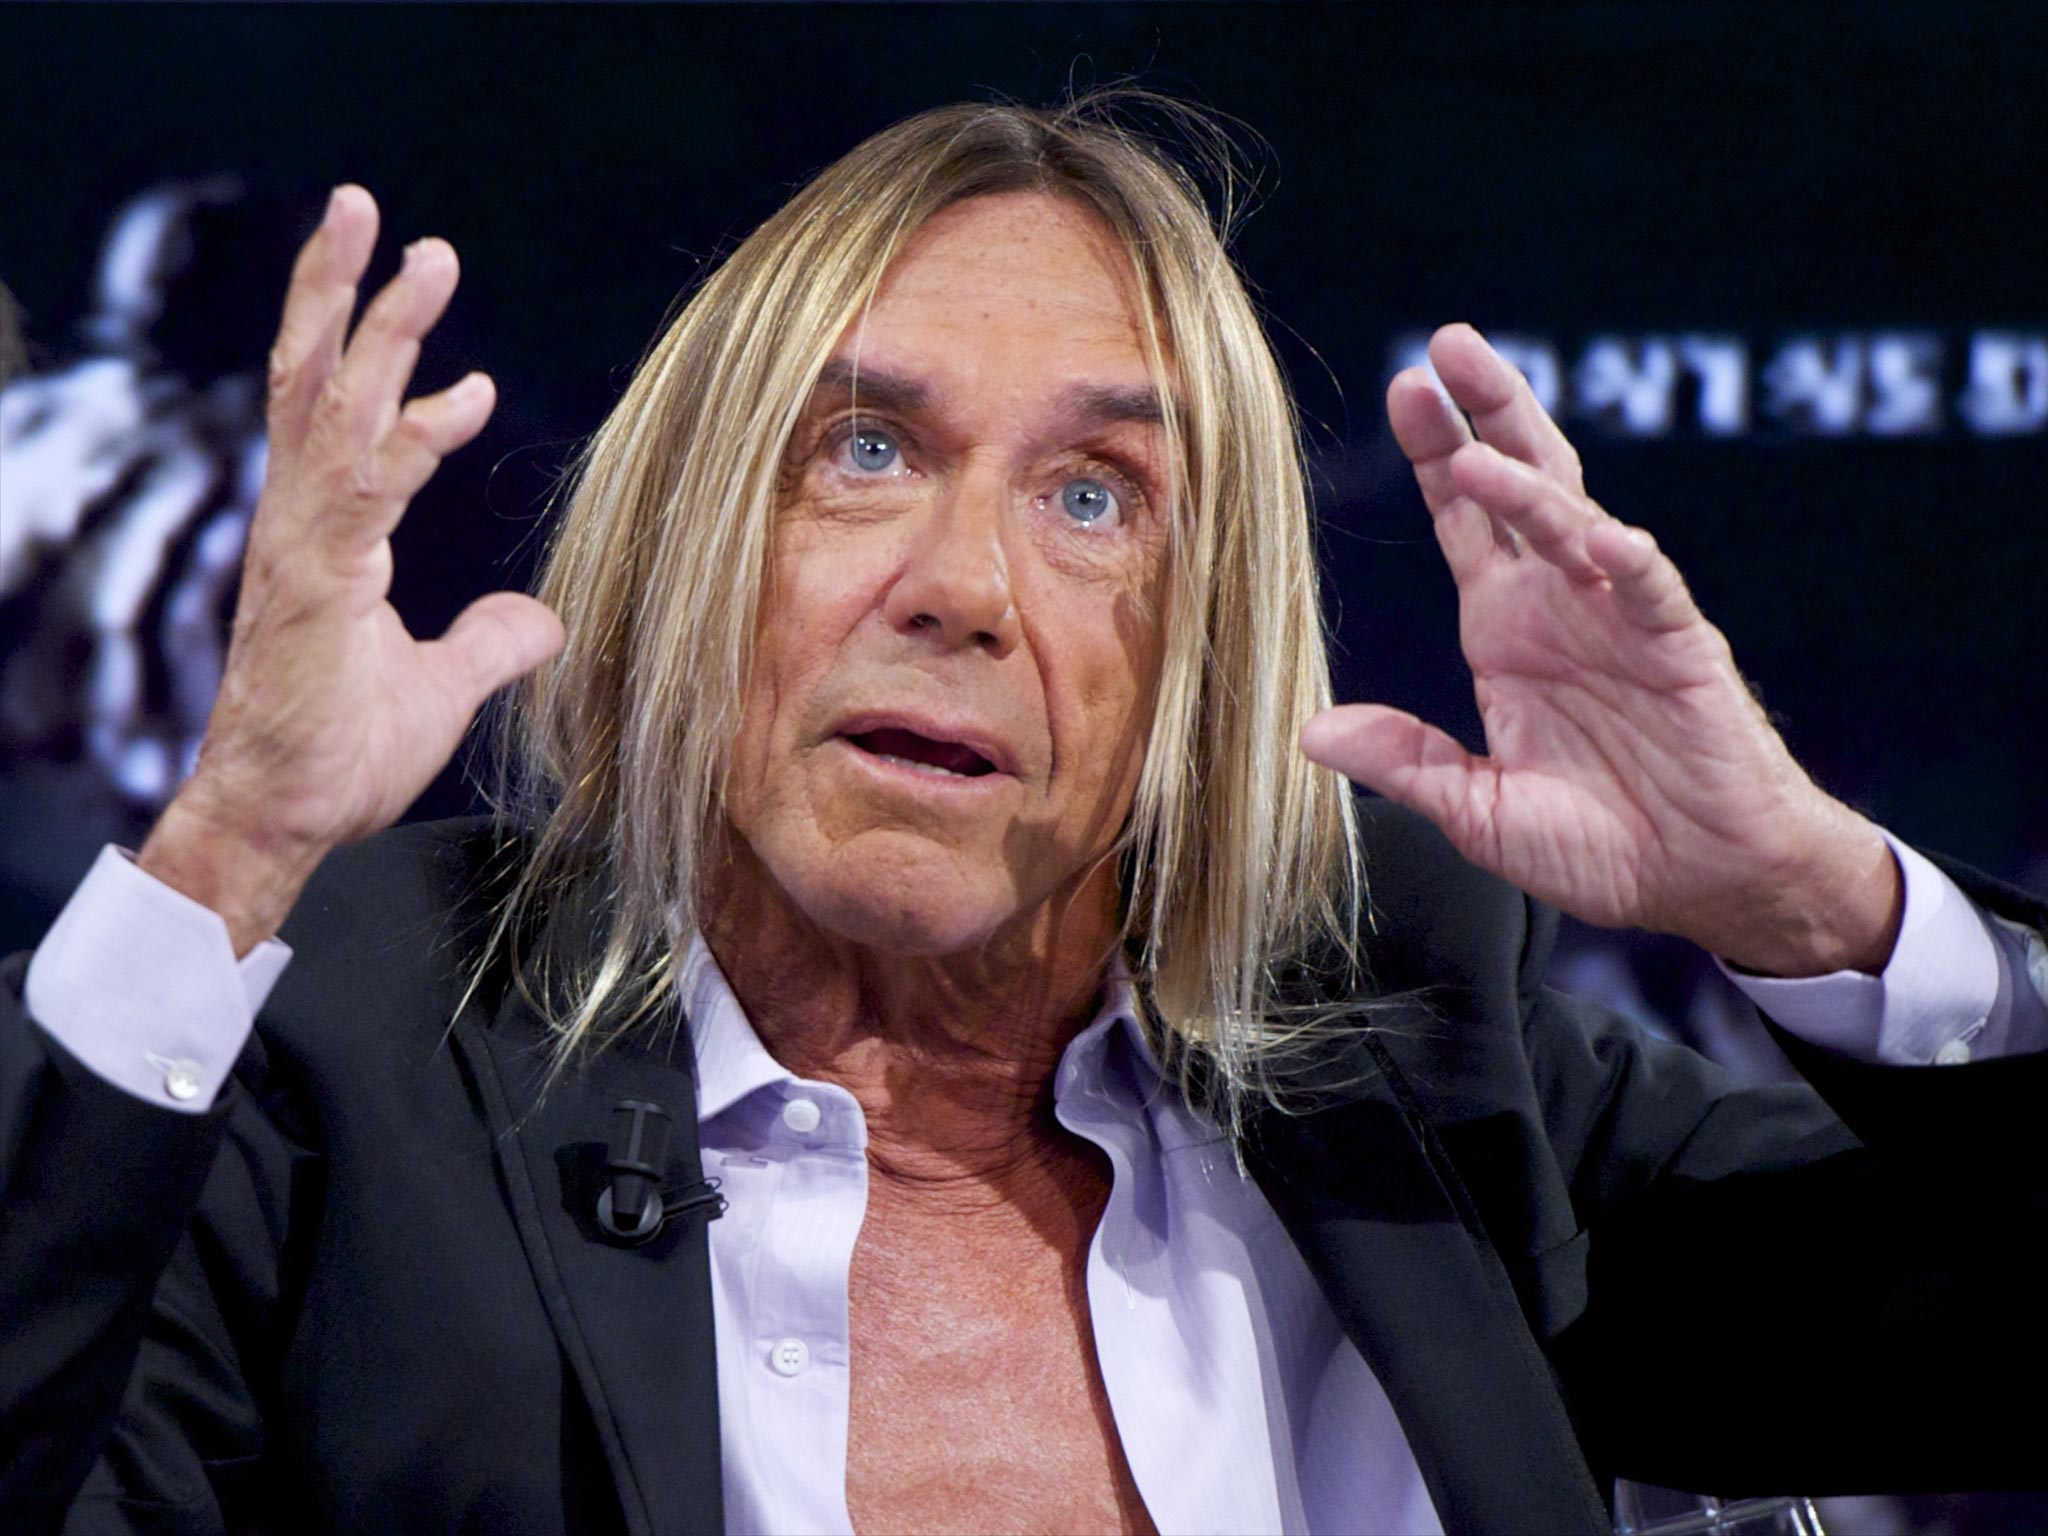 Iggy Pop - 2017 Regular Blond hair & alternative hair style. Current length:  near-shaved Hair